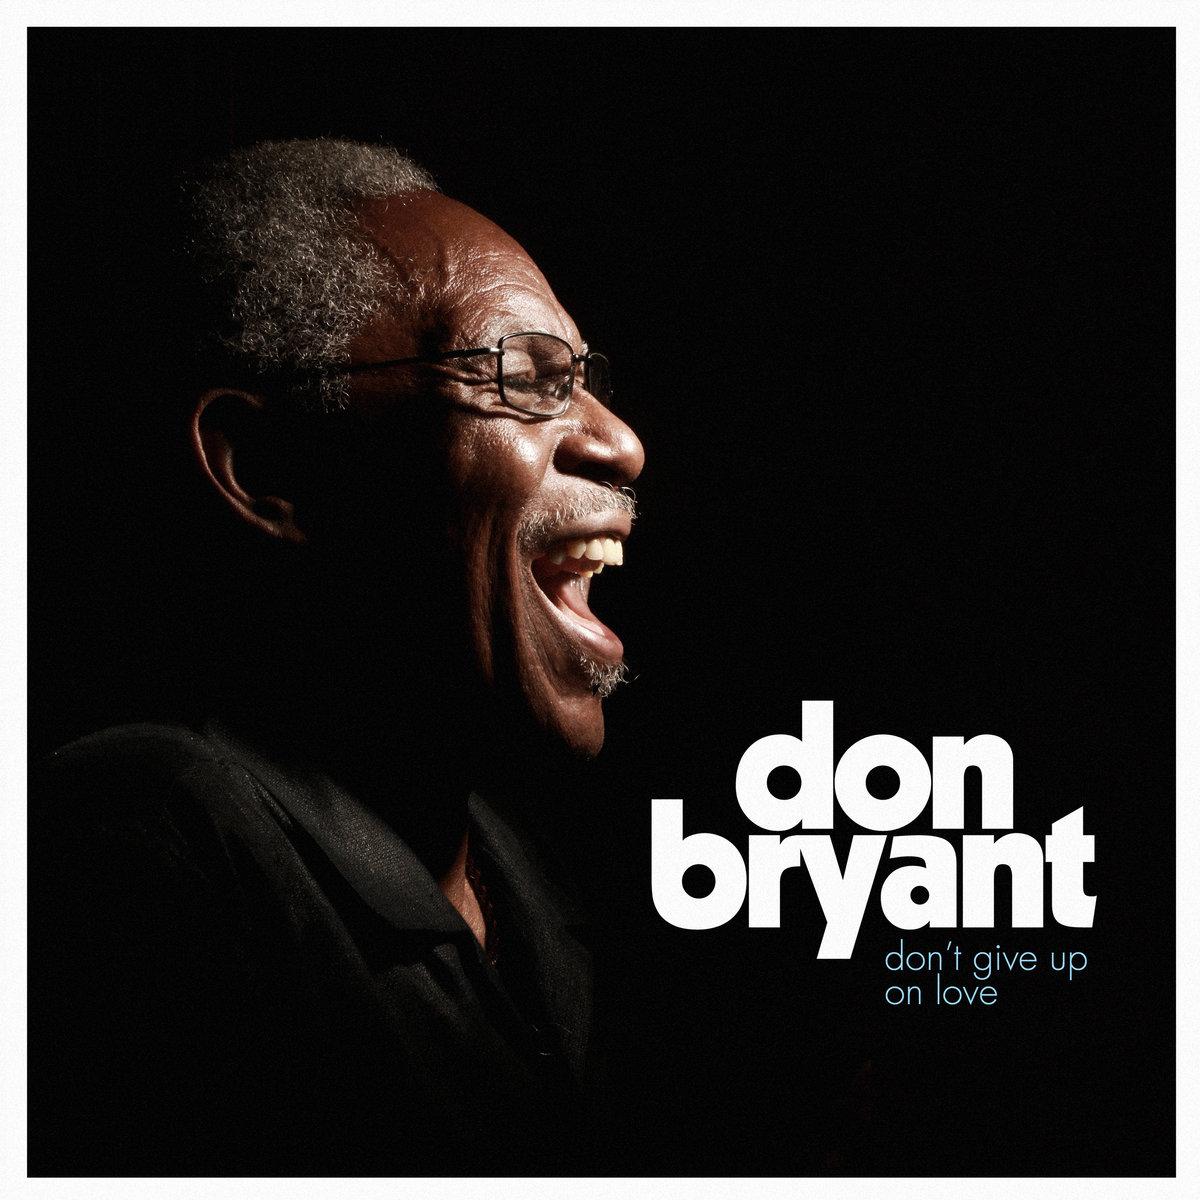 Don Bryant Don't Give Up On Love